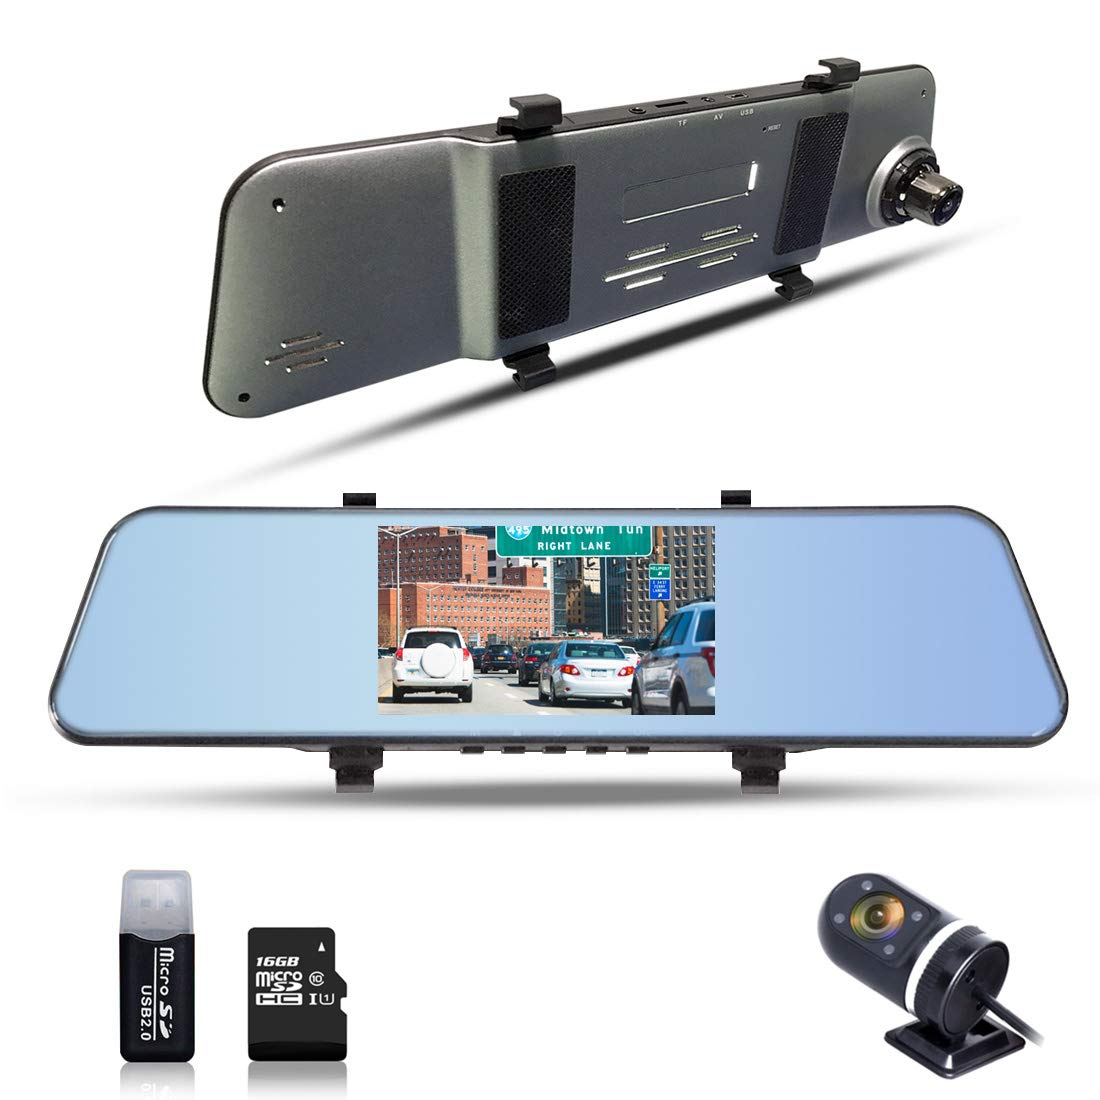 1296P Mirror Cam Dual Lens Dashboard Camera with 170° Wide Angle 5'' Display ADAS Function by BLUEPUPILE